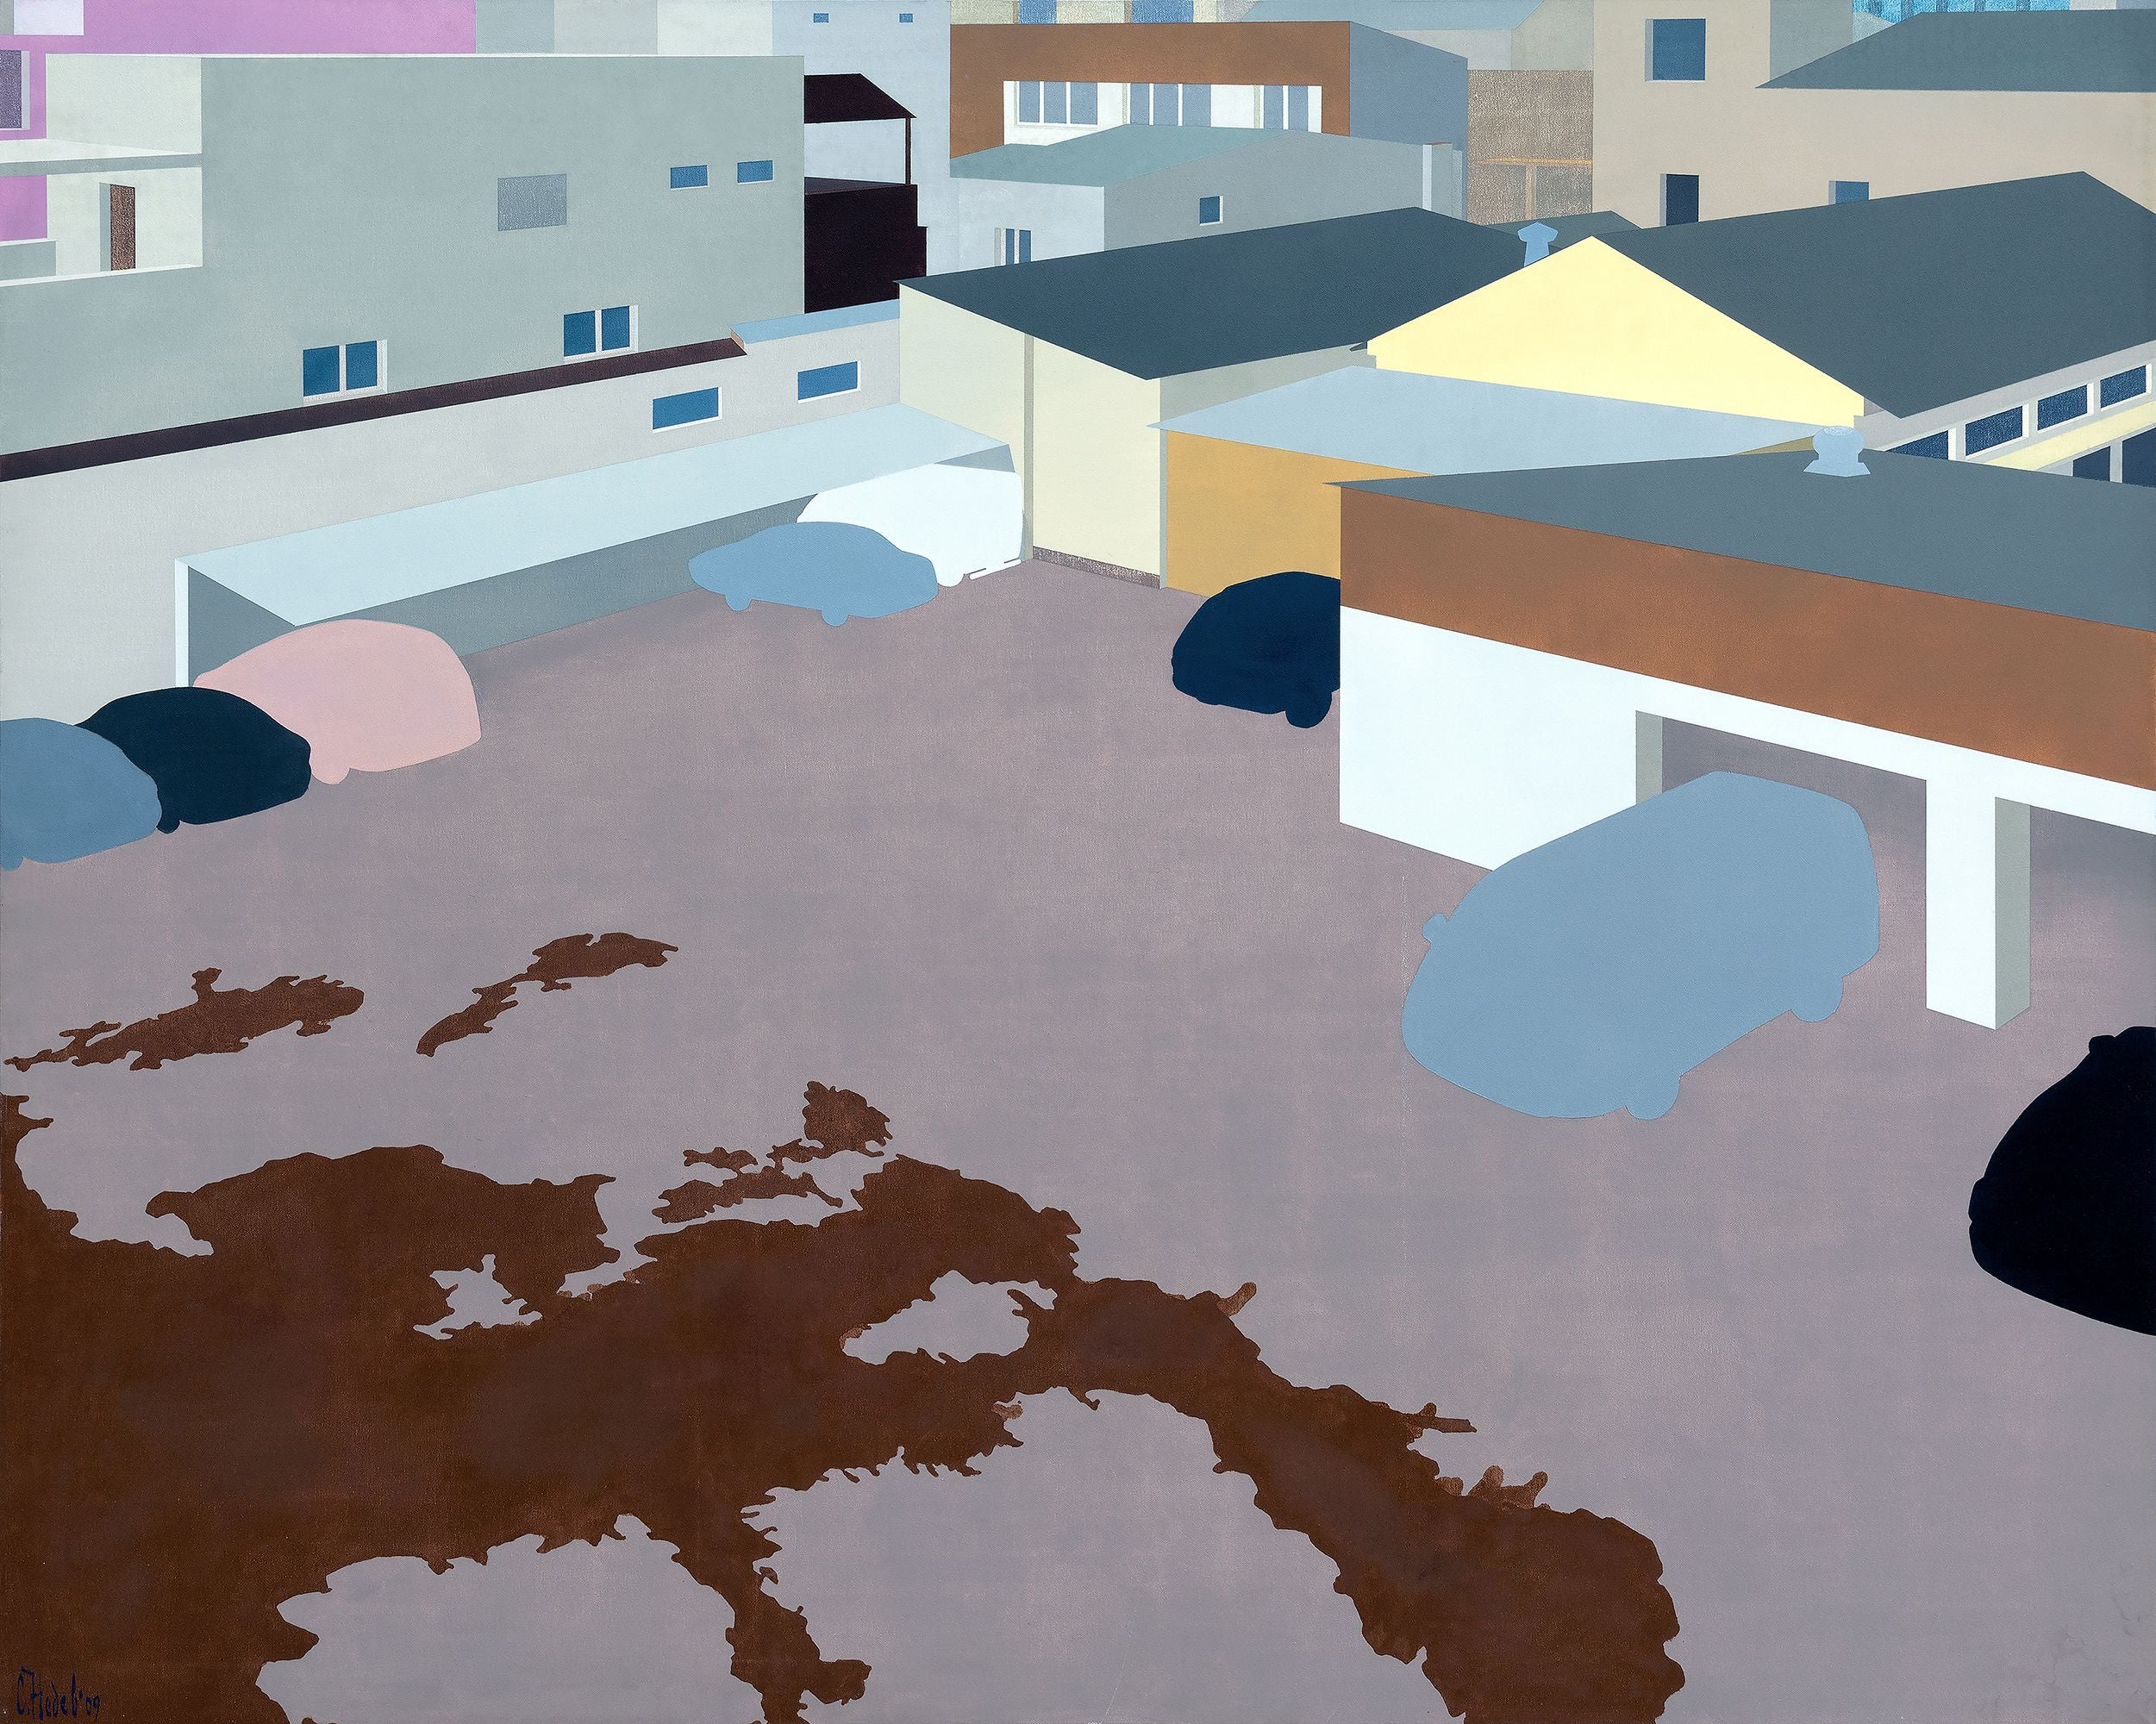 Post-urban Vision No. 5, Painting, Oil on Canvas